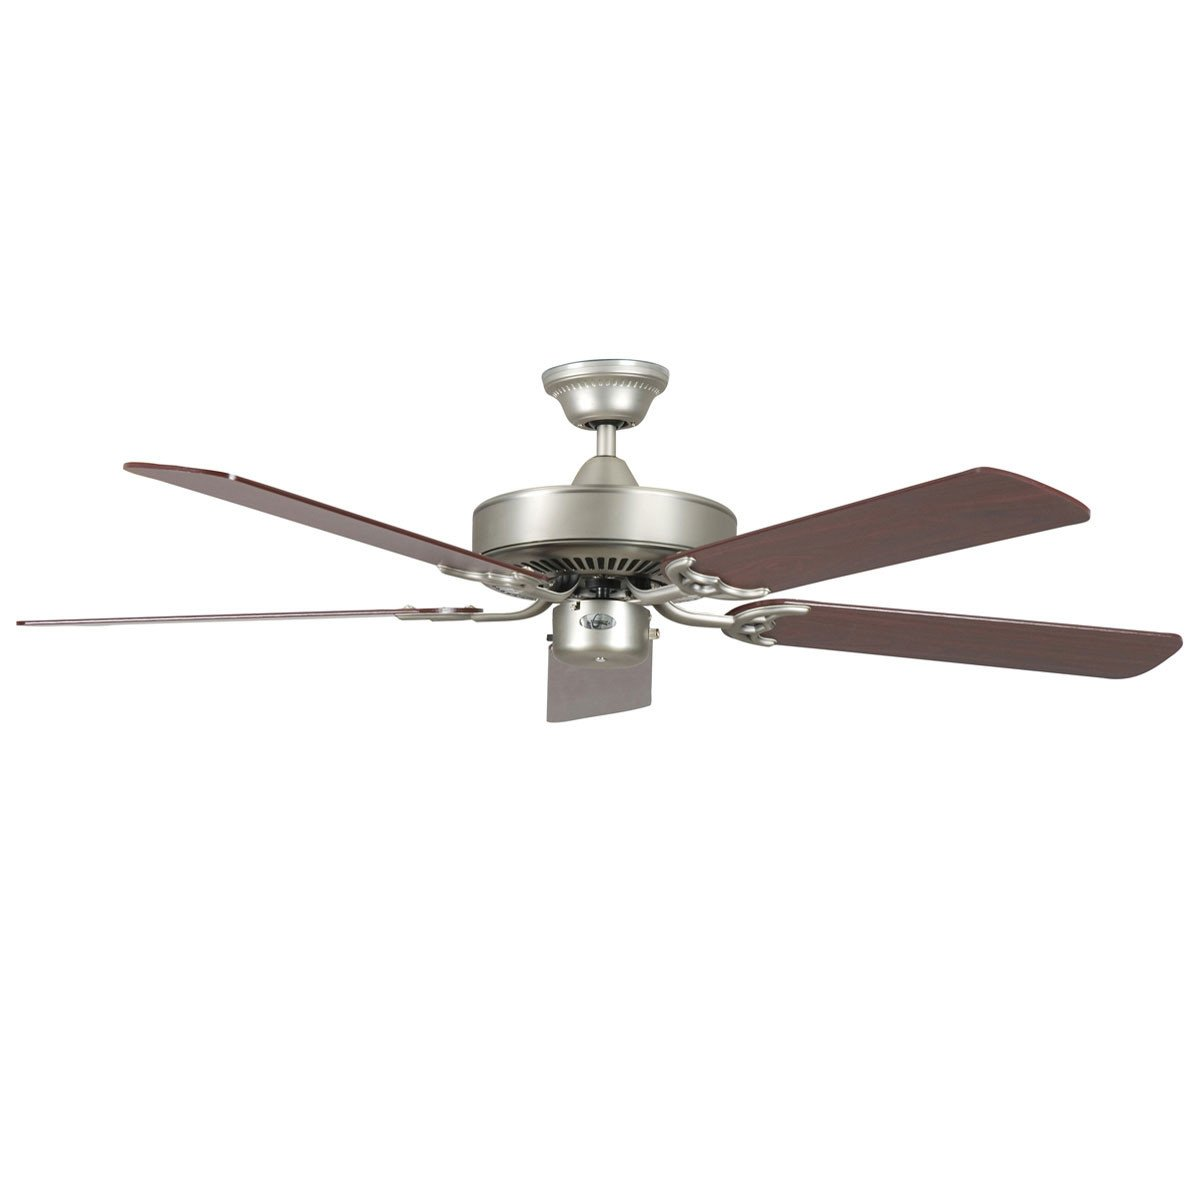 "Concord Fans 52"" California Home Energy Saver Style Satin Nickel Ceiling Fan"